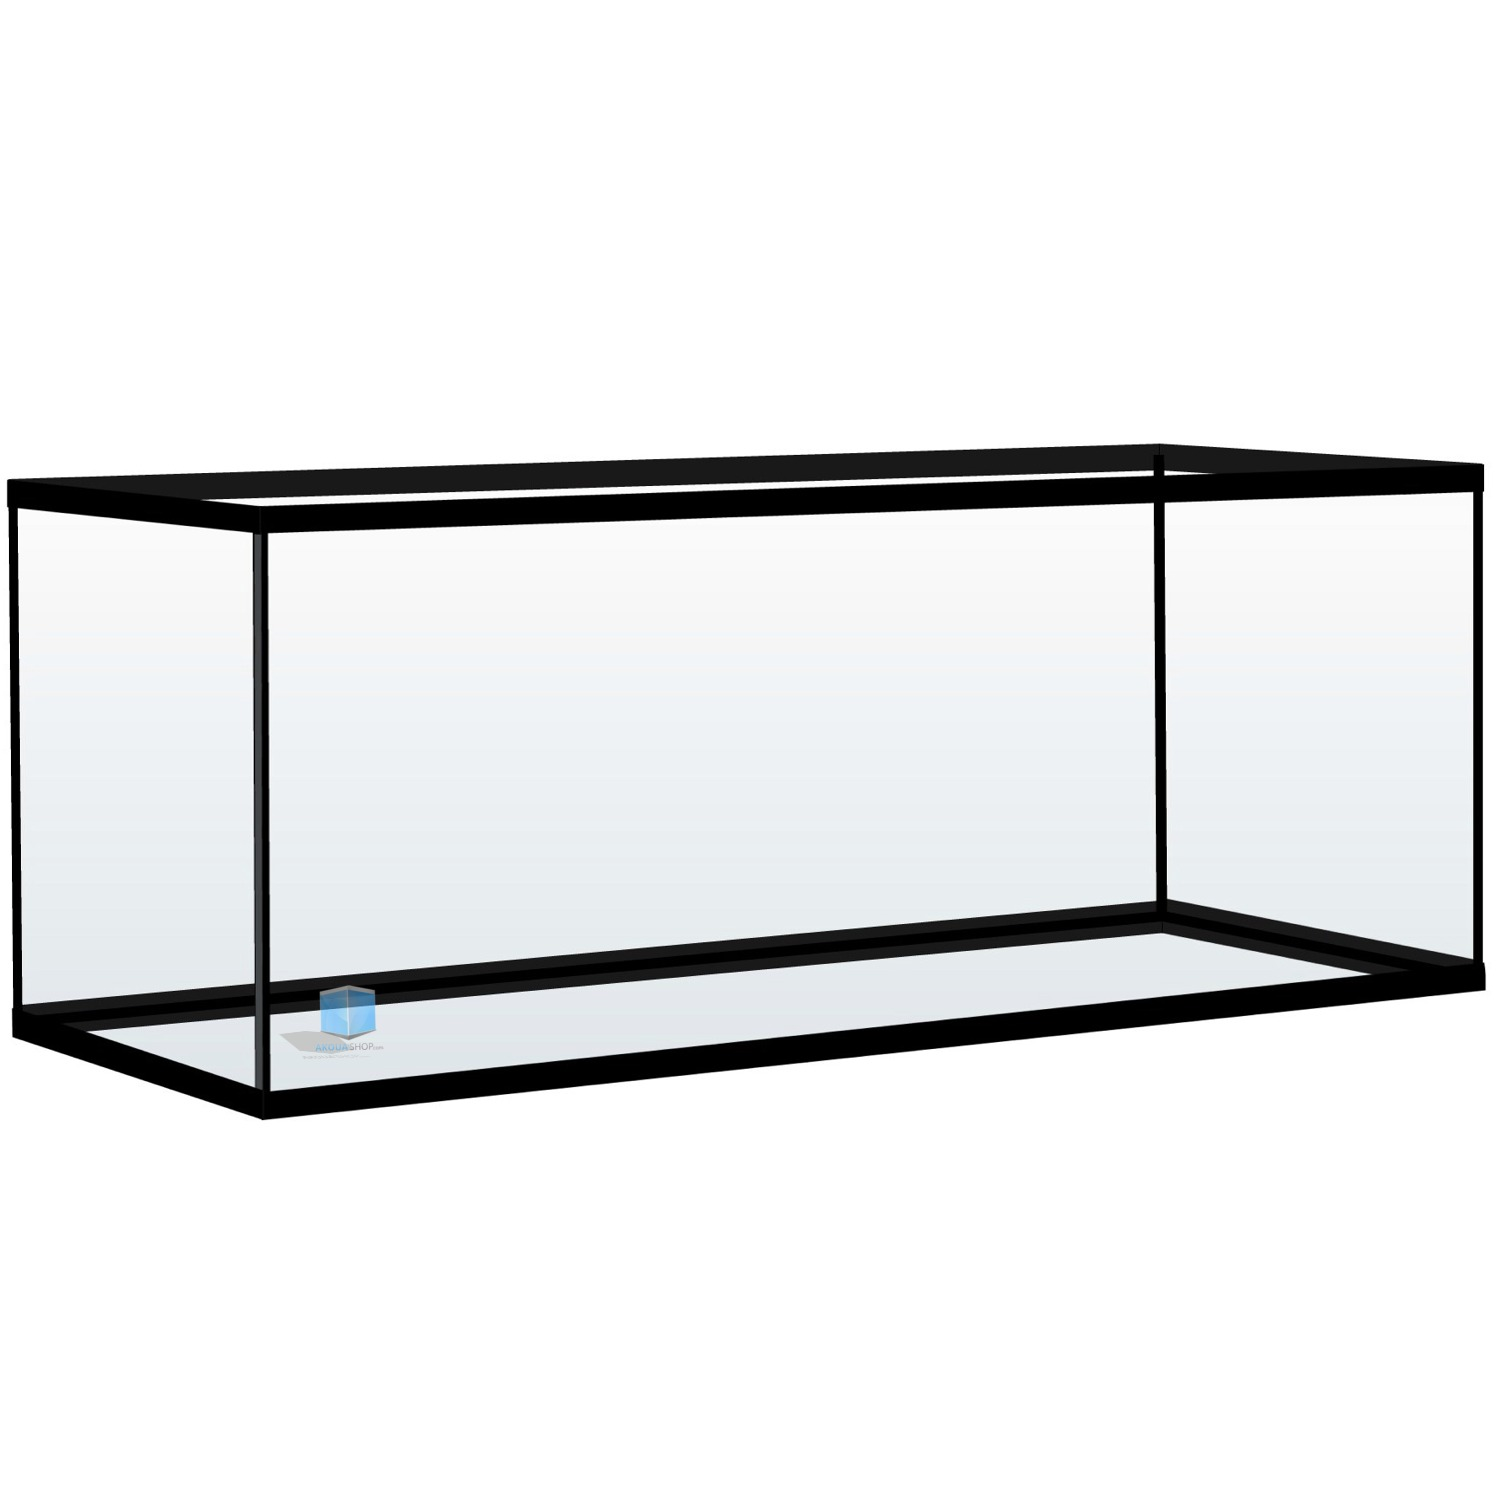 cuve d 39 aquarium nue 450l dim 150 x 50 x 60 cm en vente. Black Bedroom Furniture Sets. Home Design Ideas